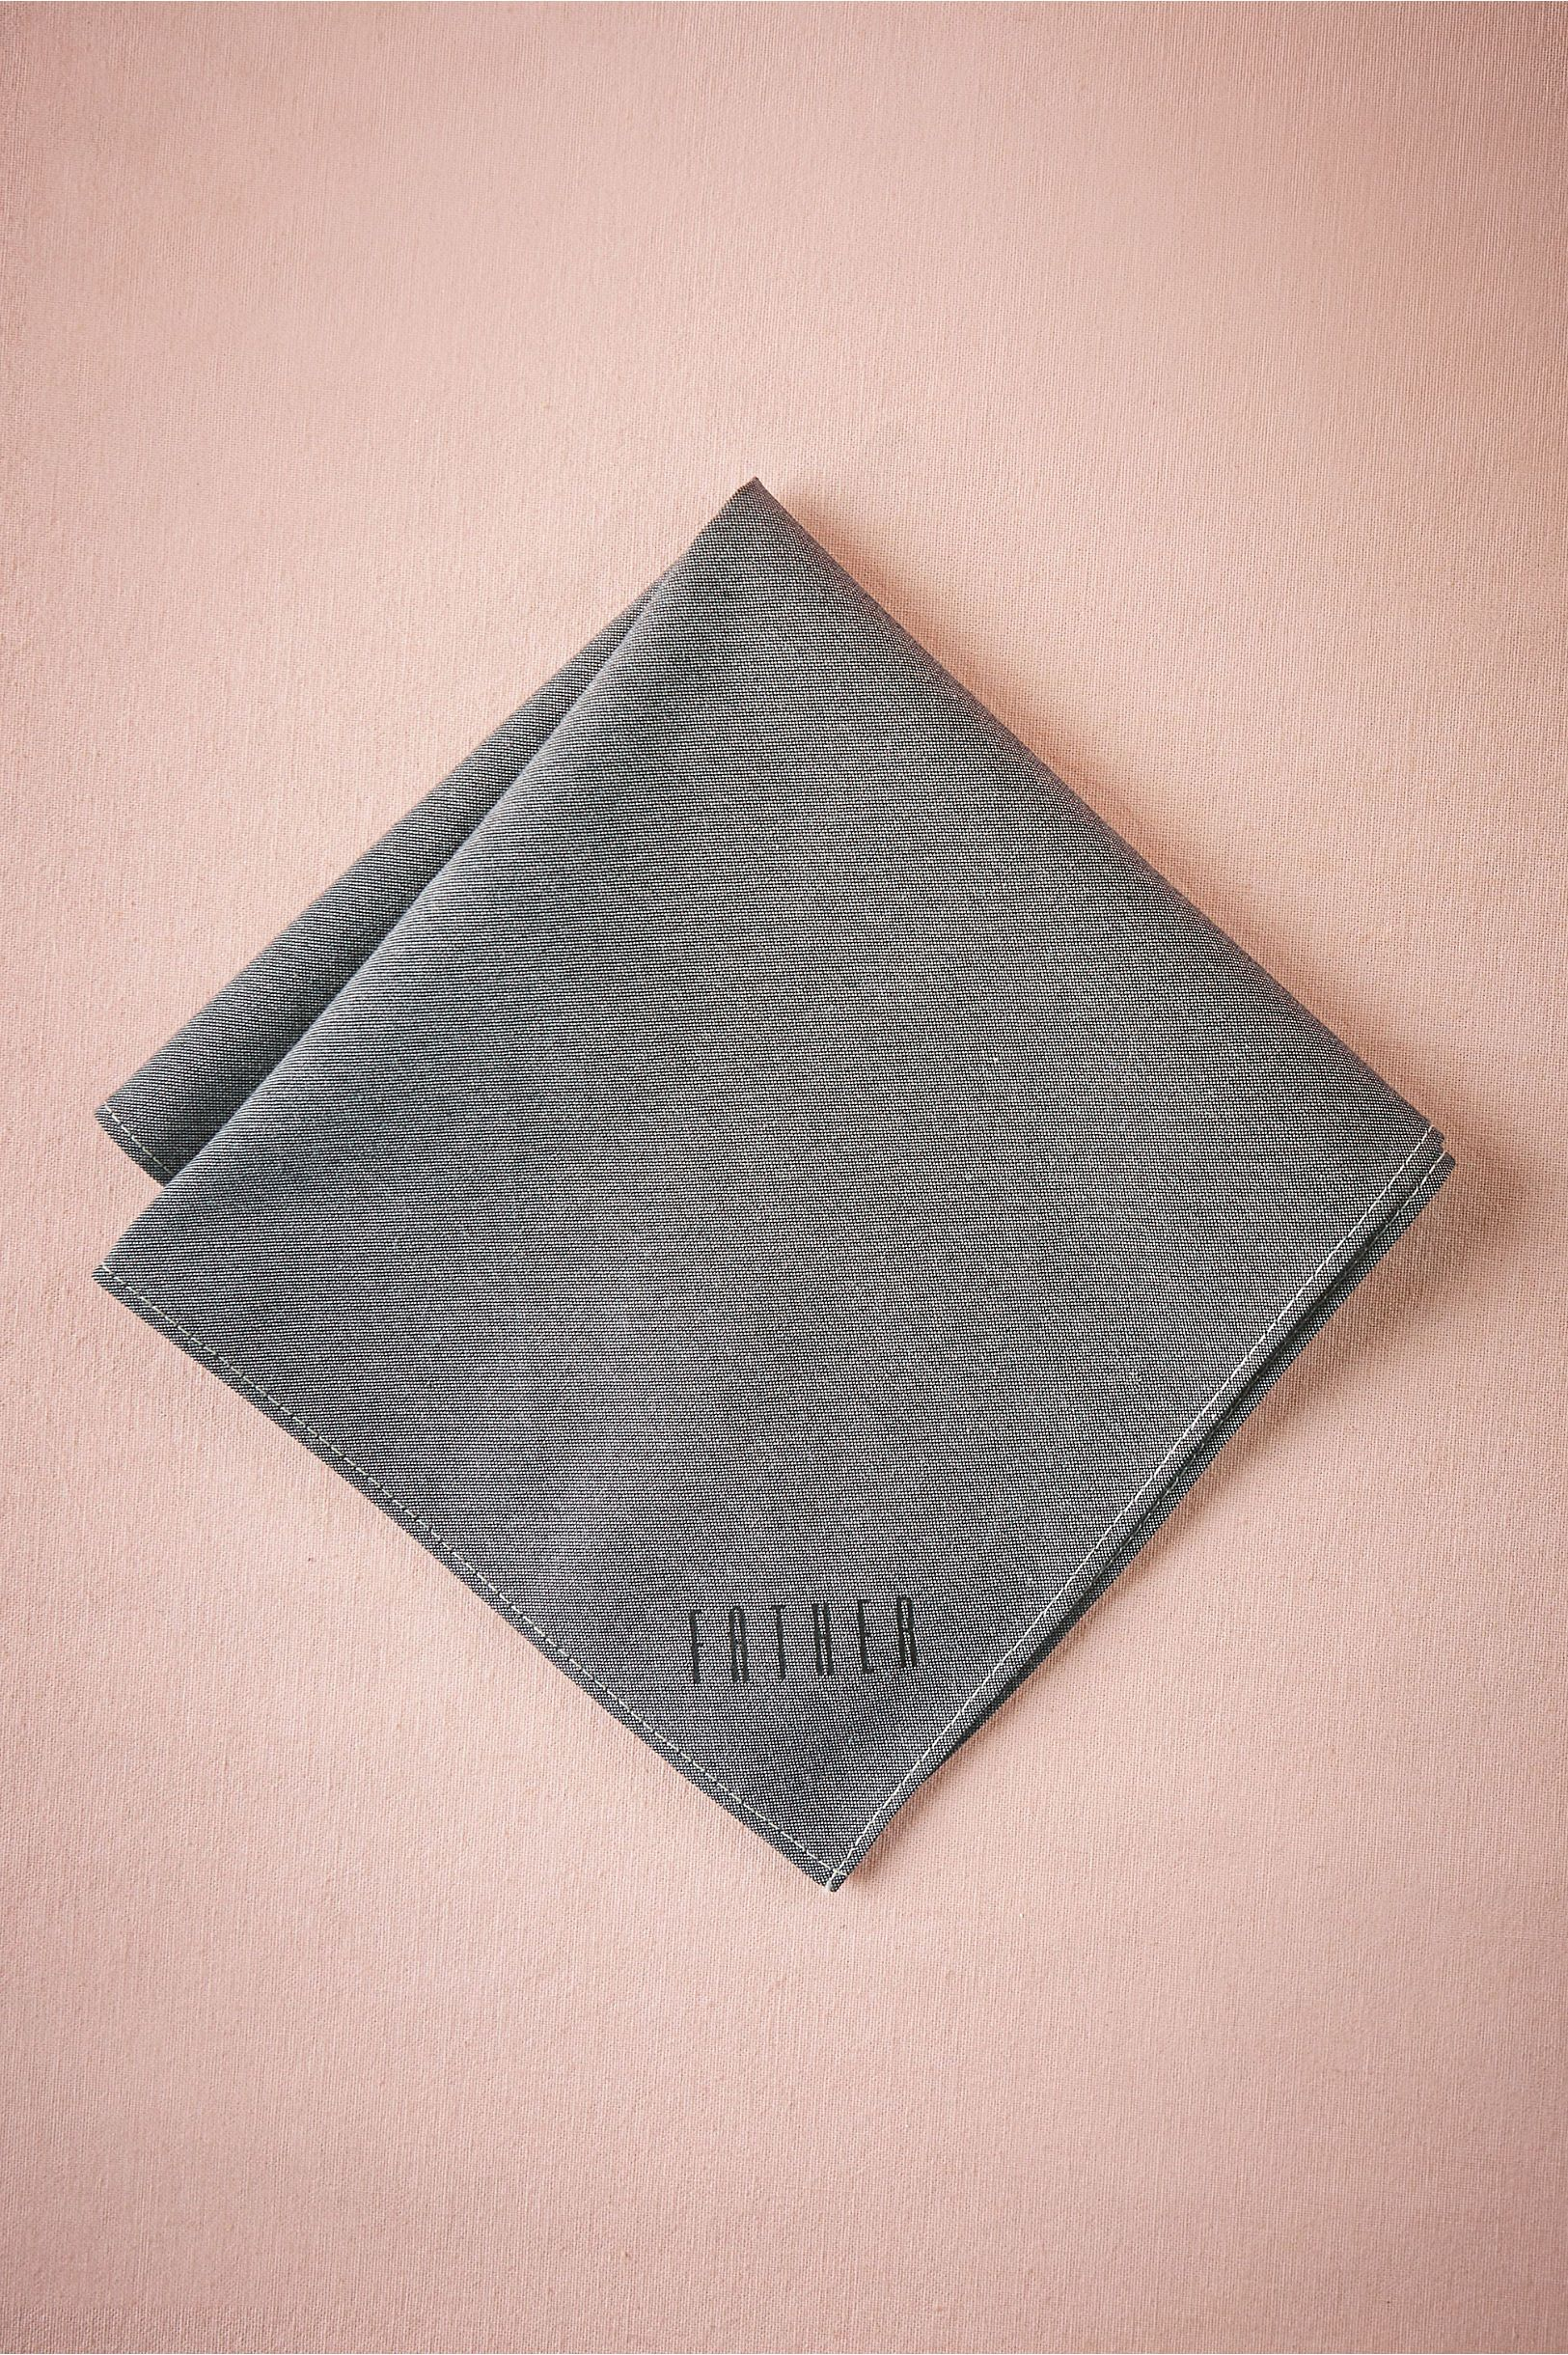 Father Chambray Handkerchief in Décor View All Décor at BHLDN ...